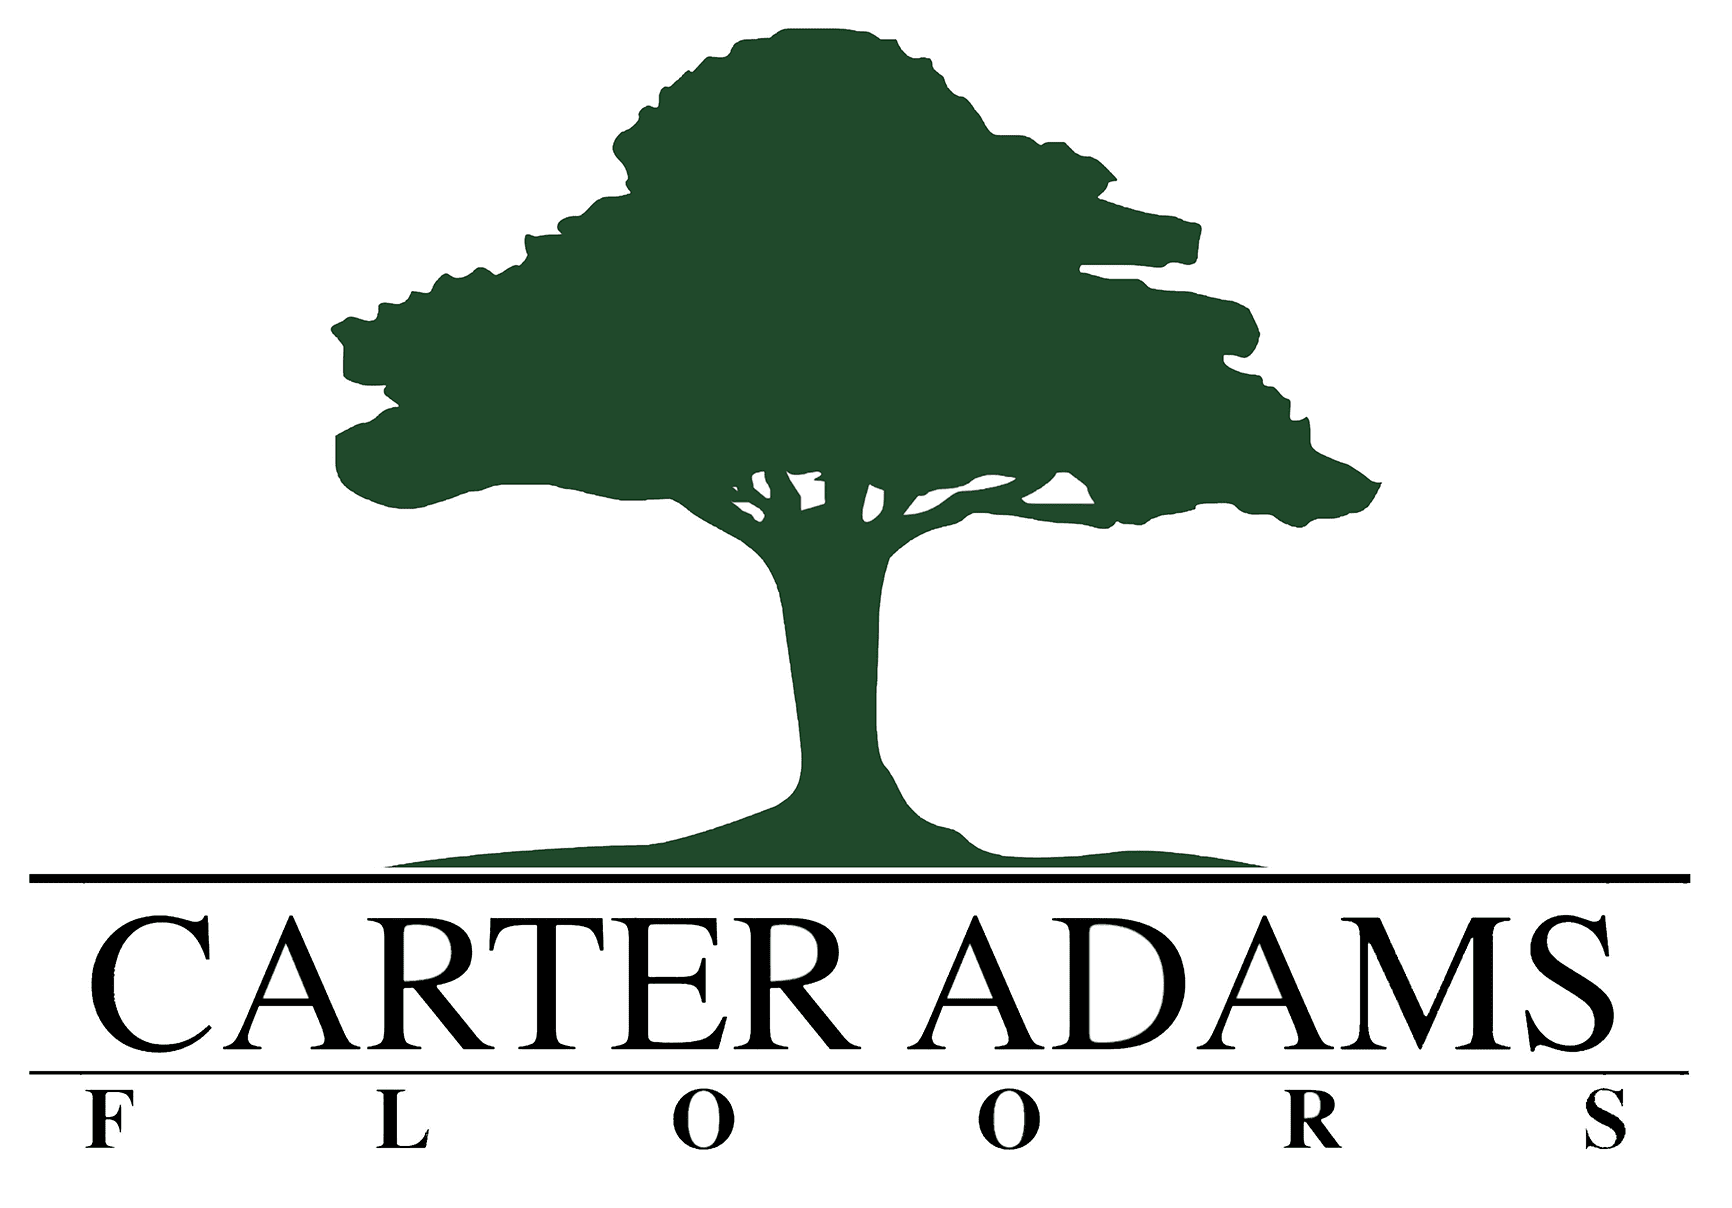 Carter Adams Flooring in Texarkana, TX